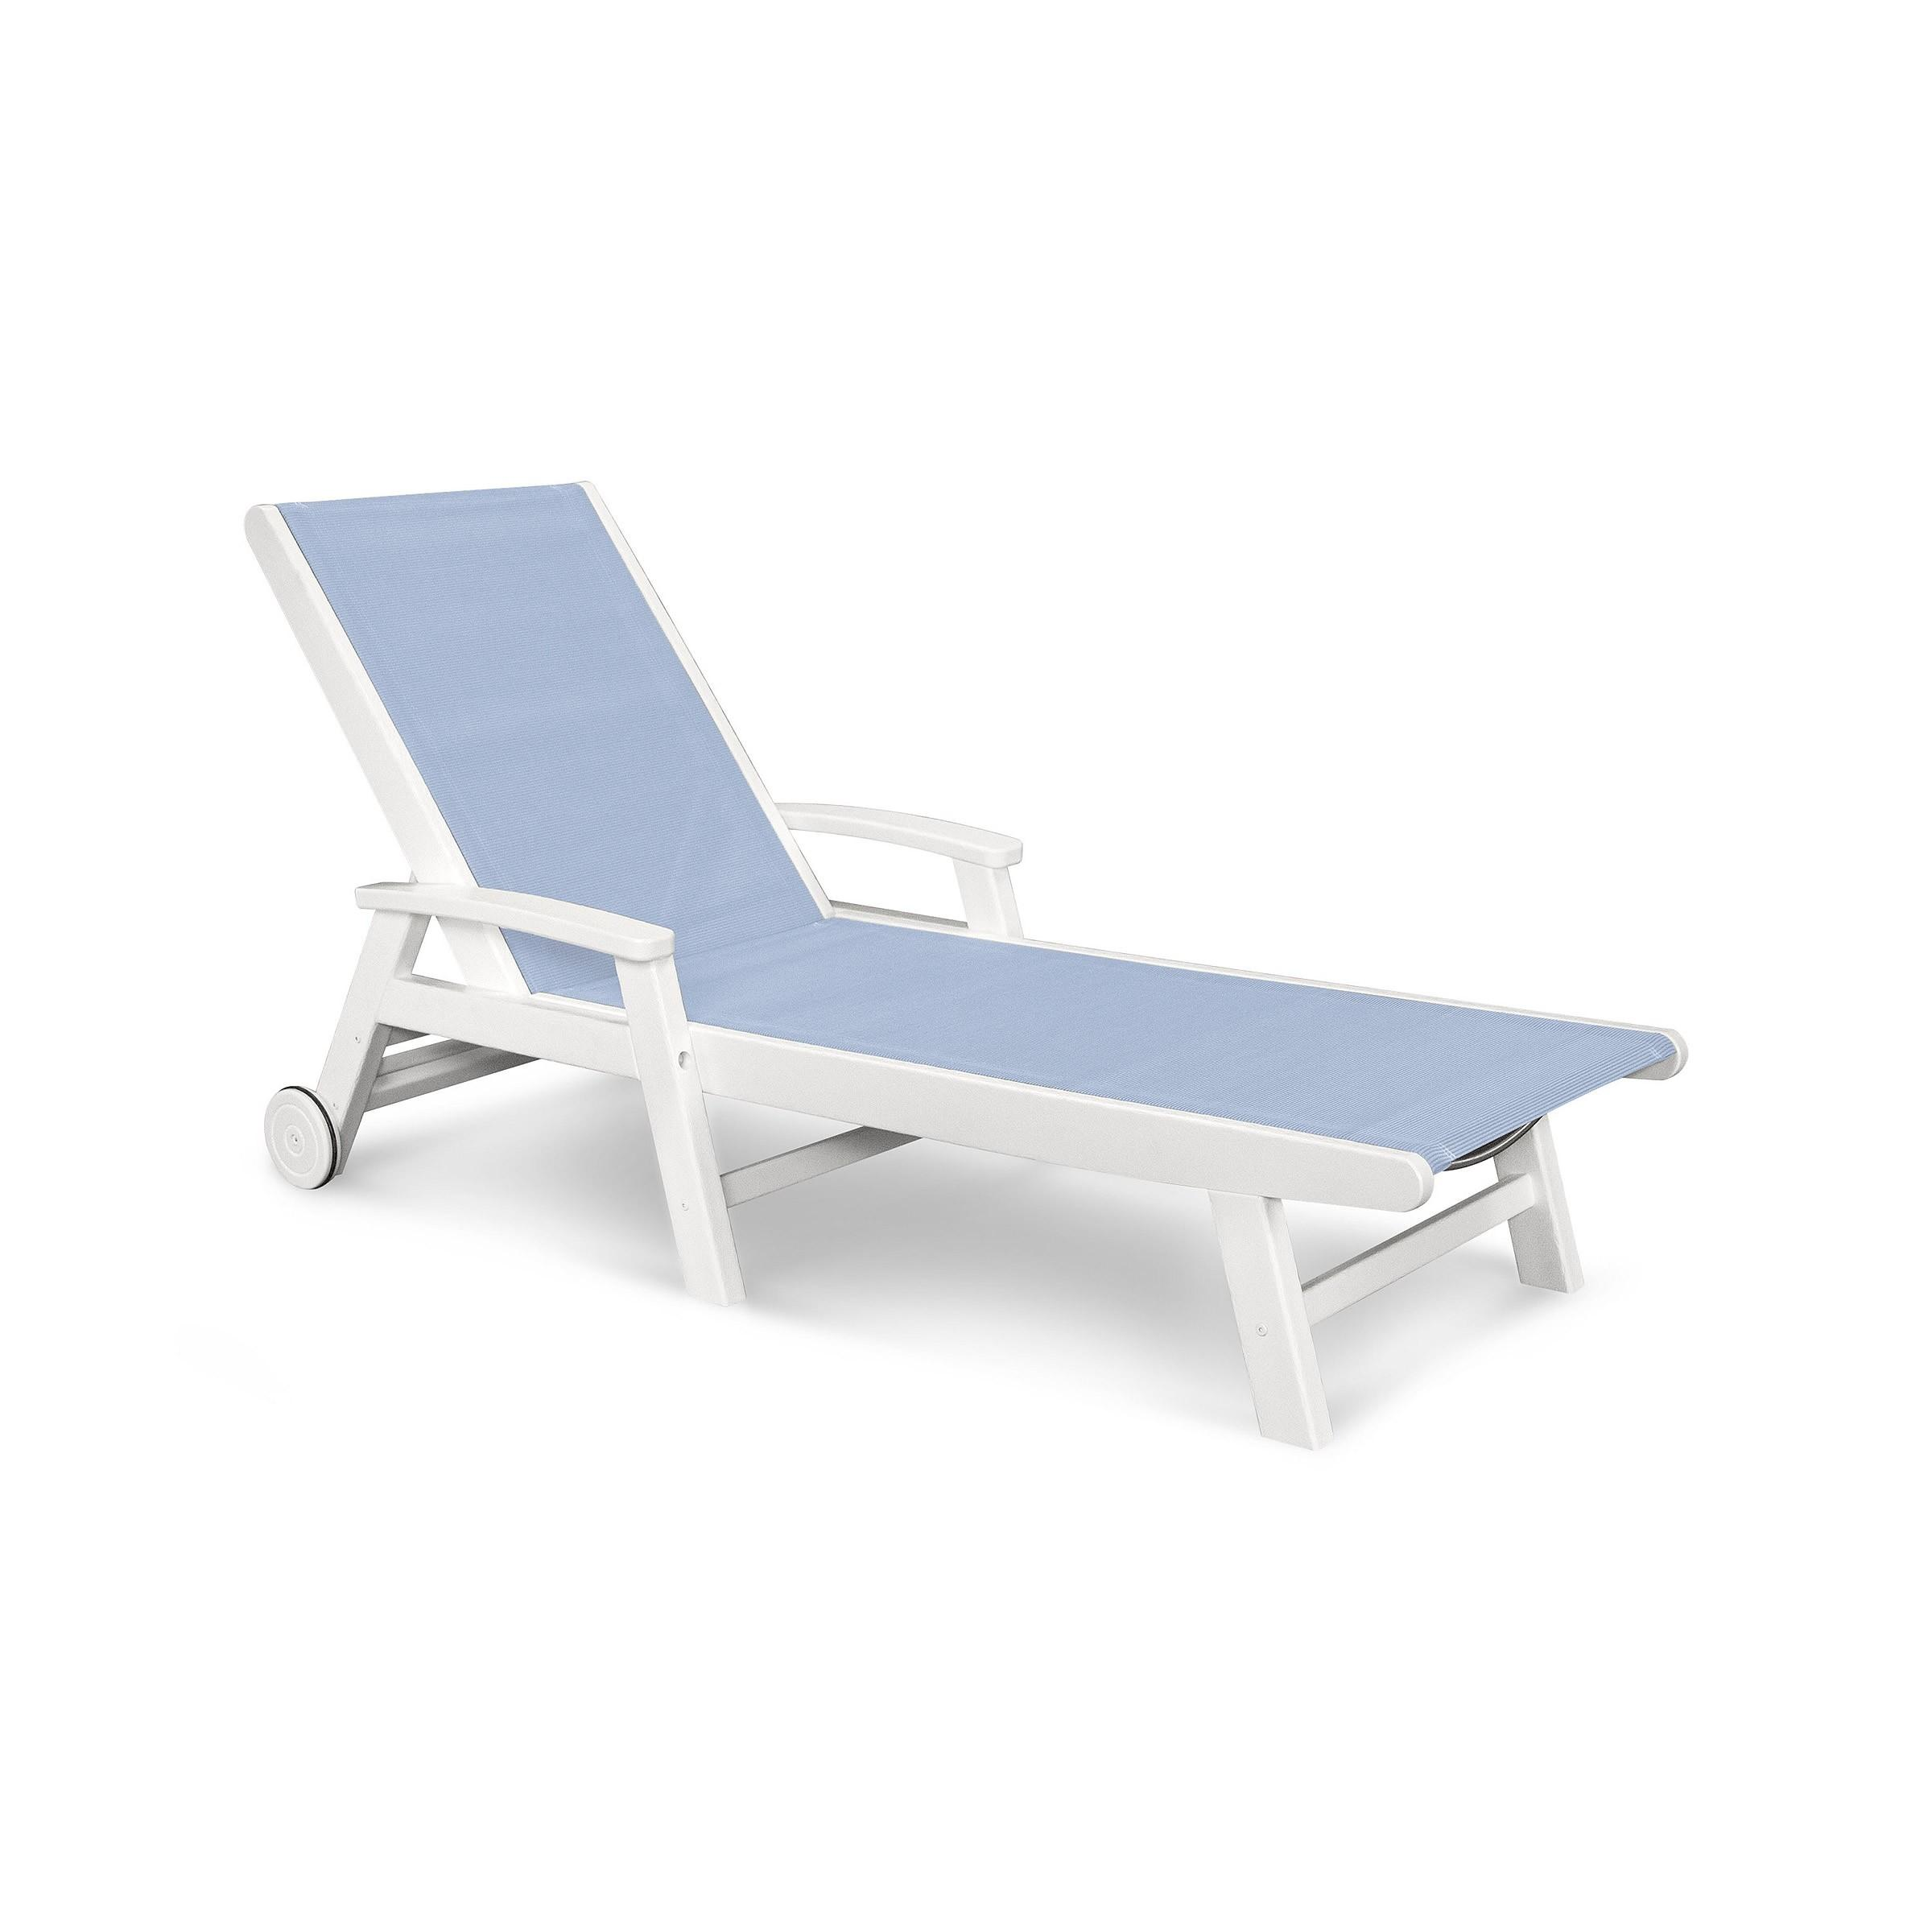 Plastic Chaise Lounge Chairs Mariaalcocer